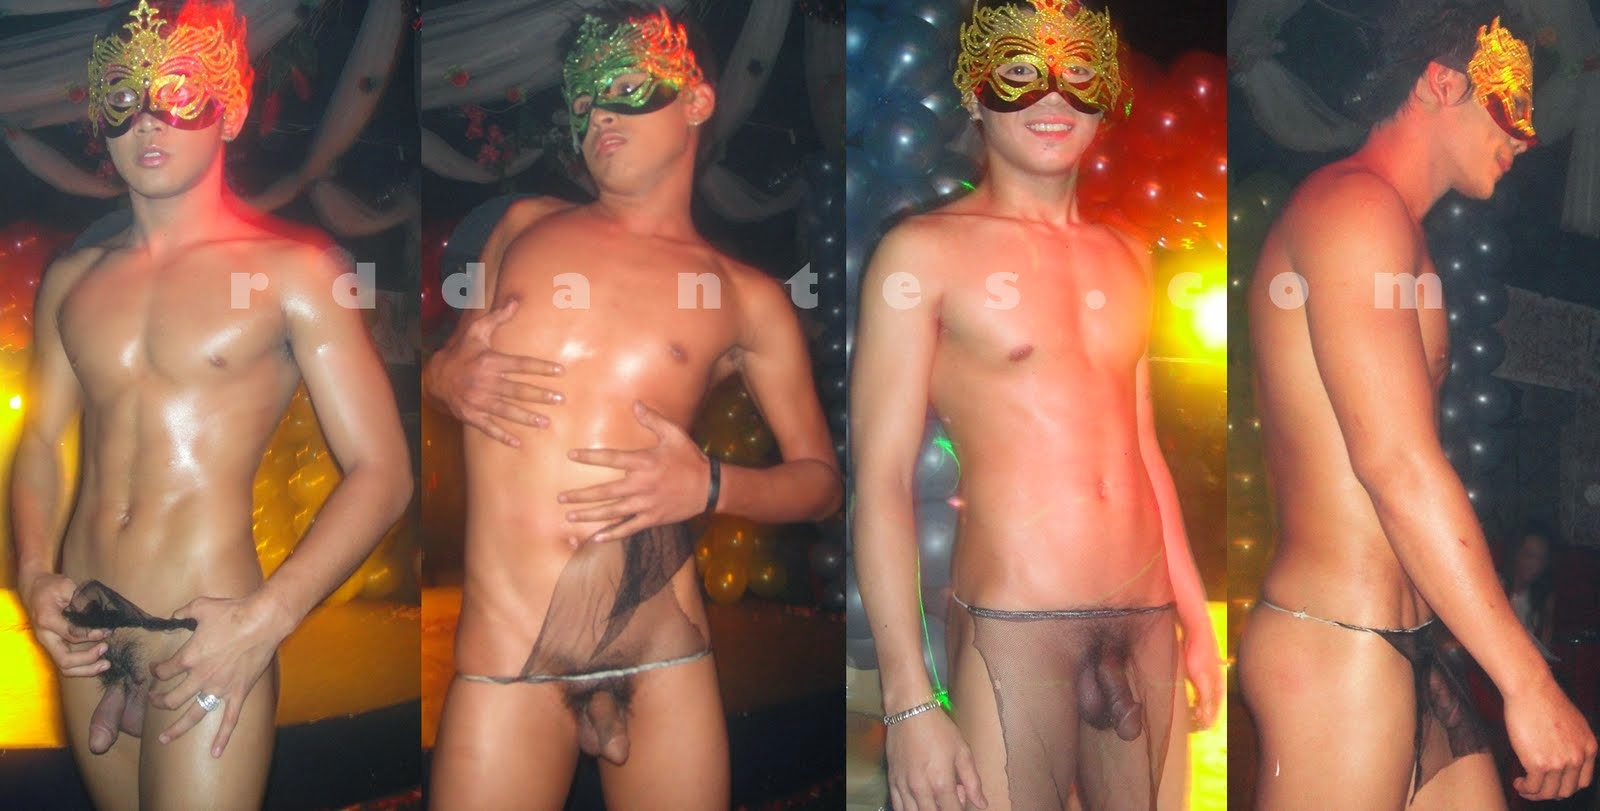 Gwapong Pinoy Scandal Pinoy Hubad  Gay Bar 3-1550